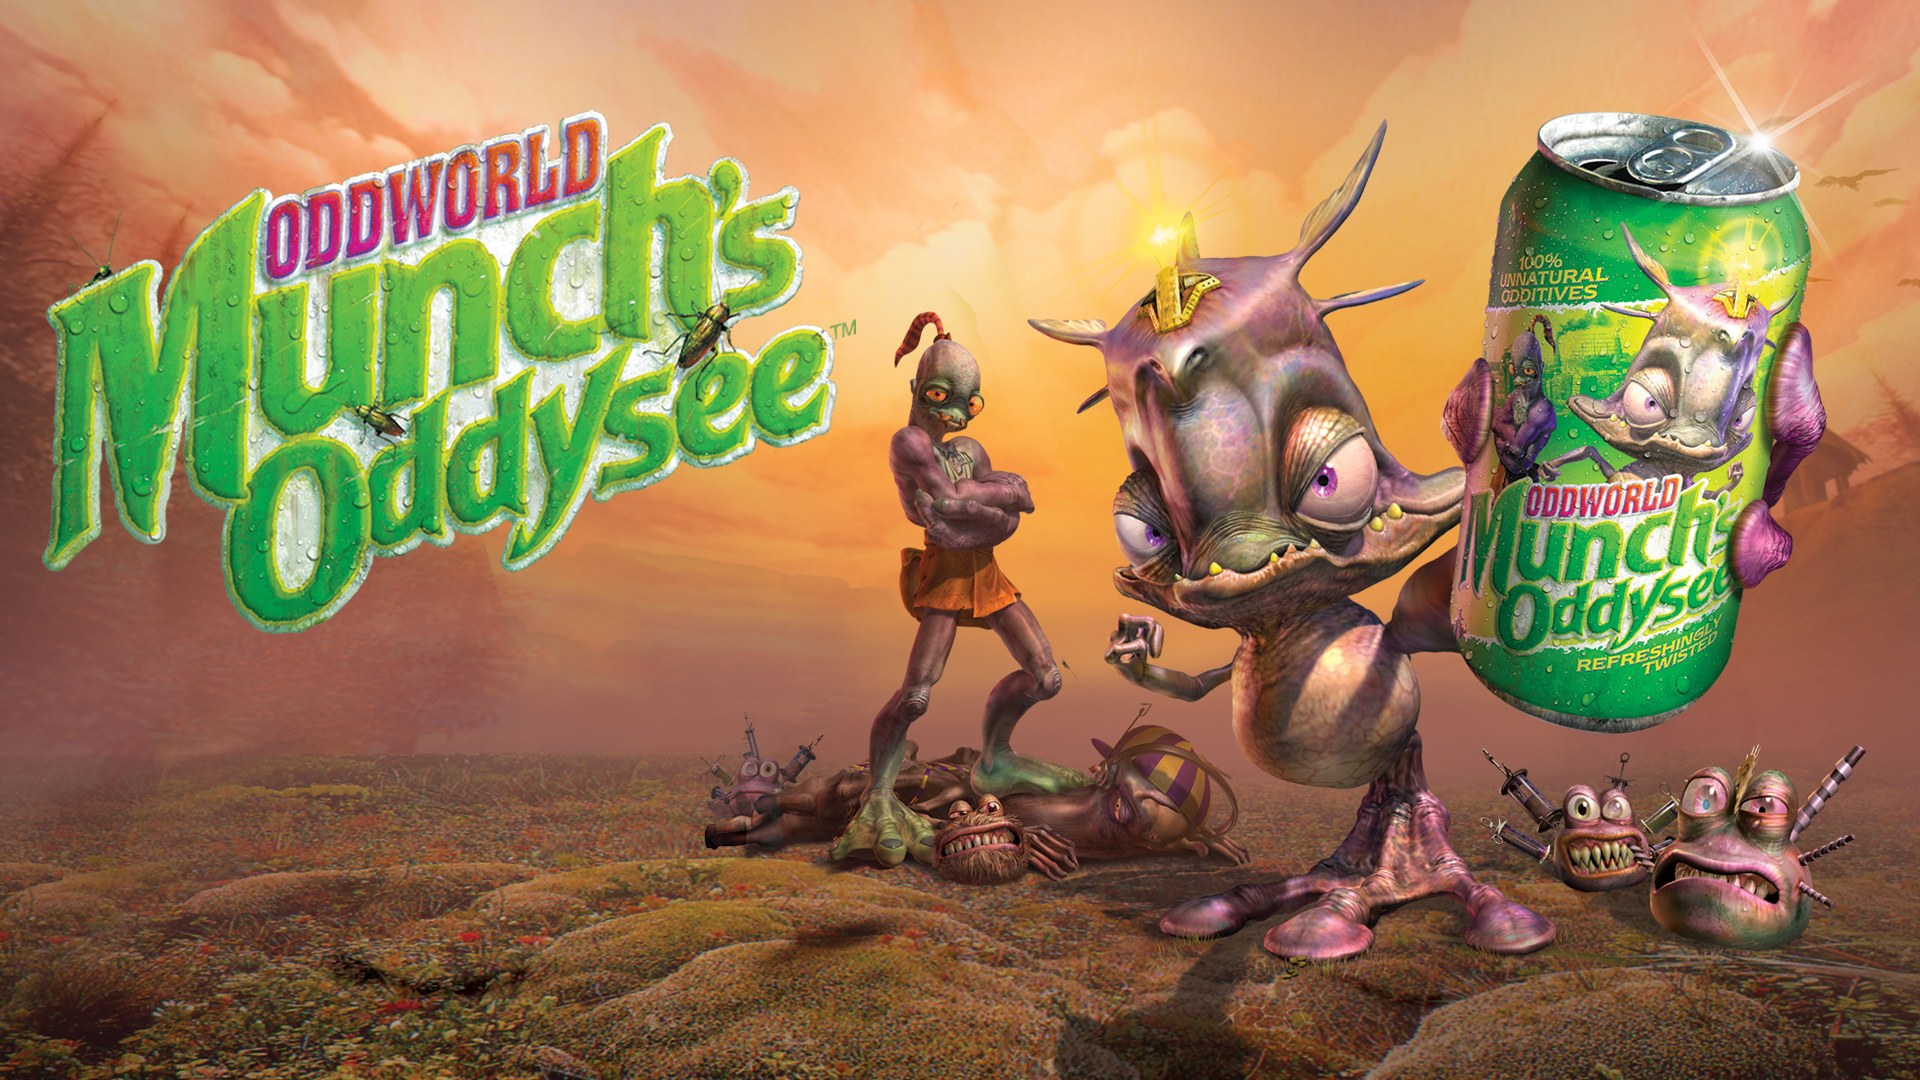 Oddworld: Munch's Oddysee Is Available In Stores Now